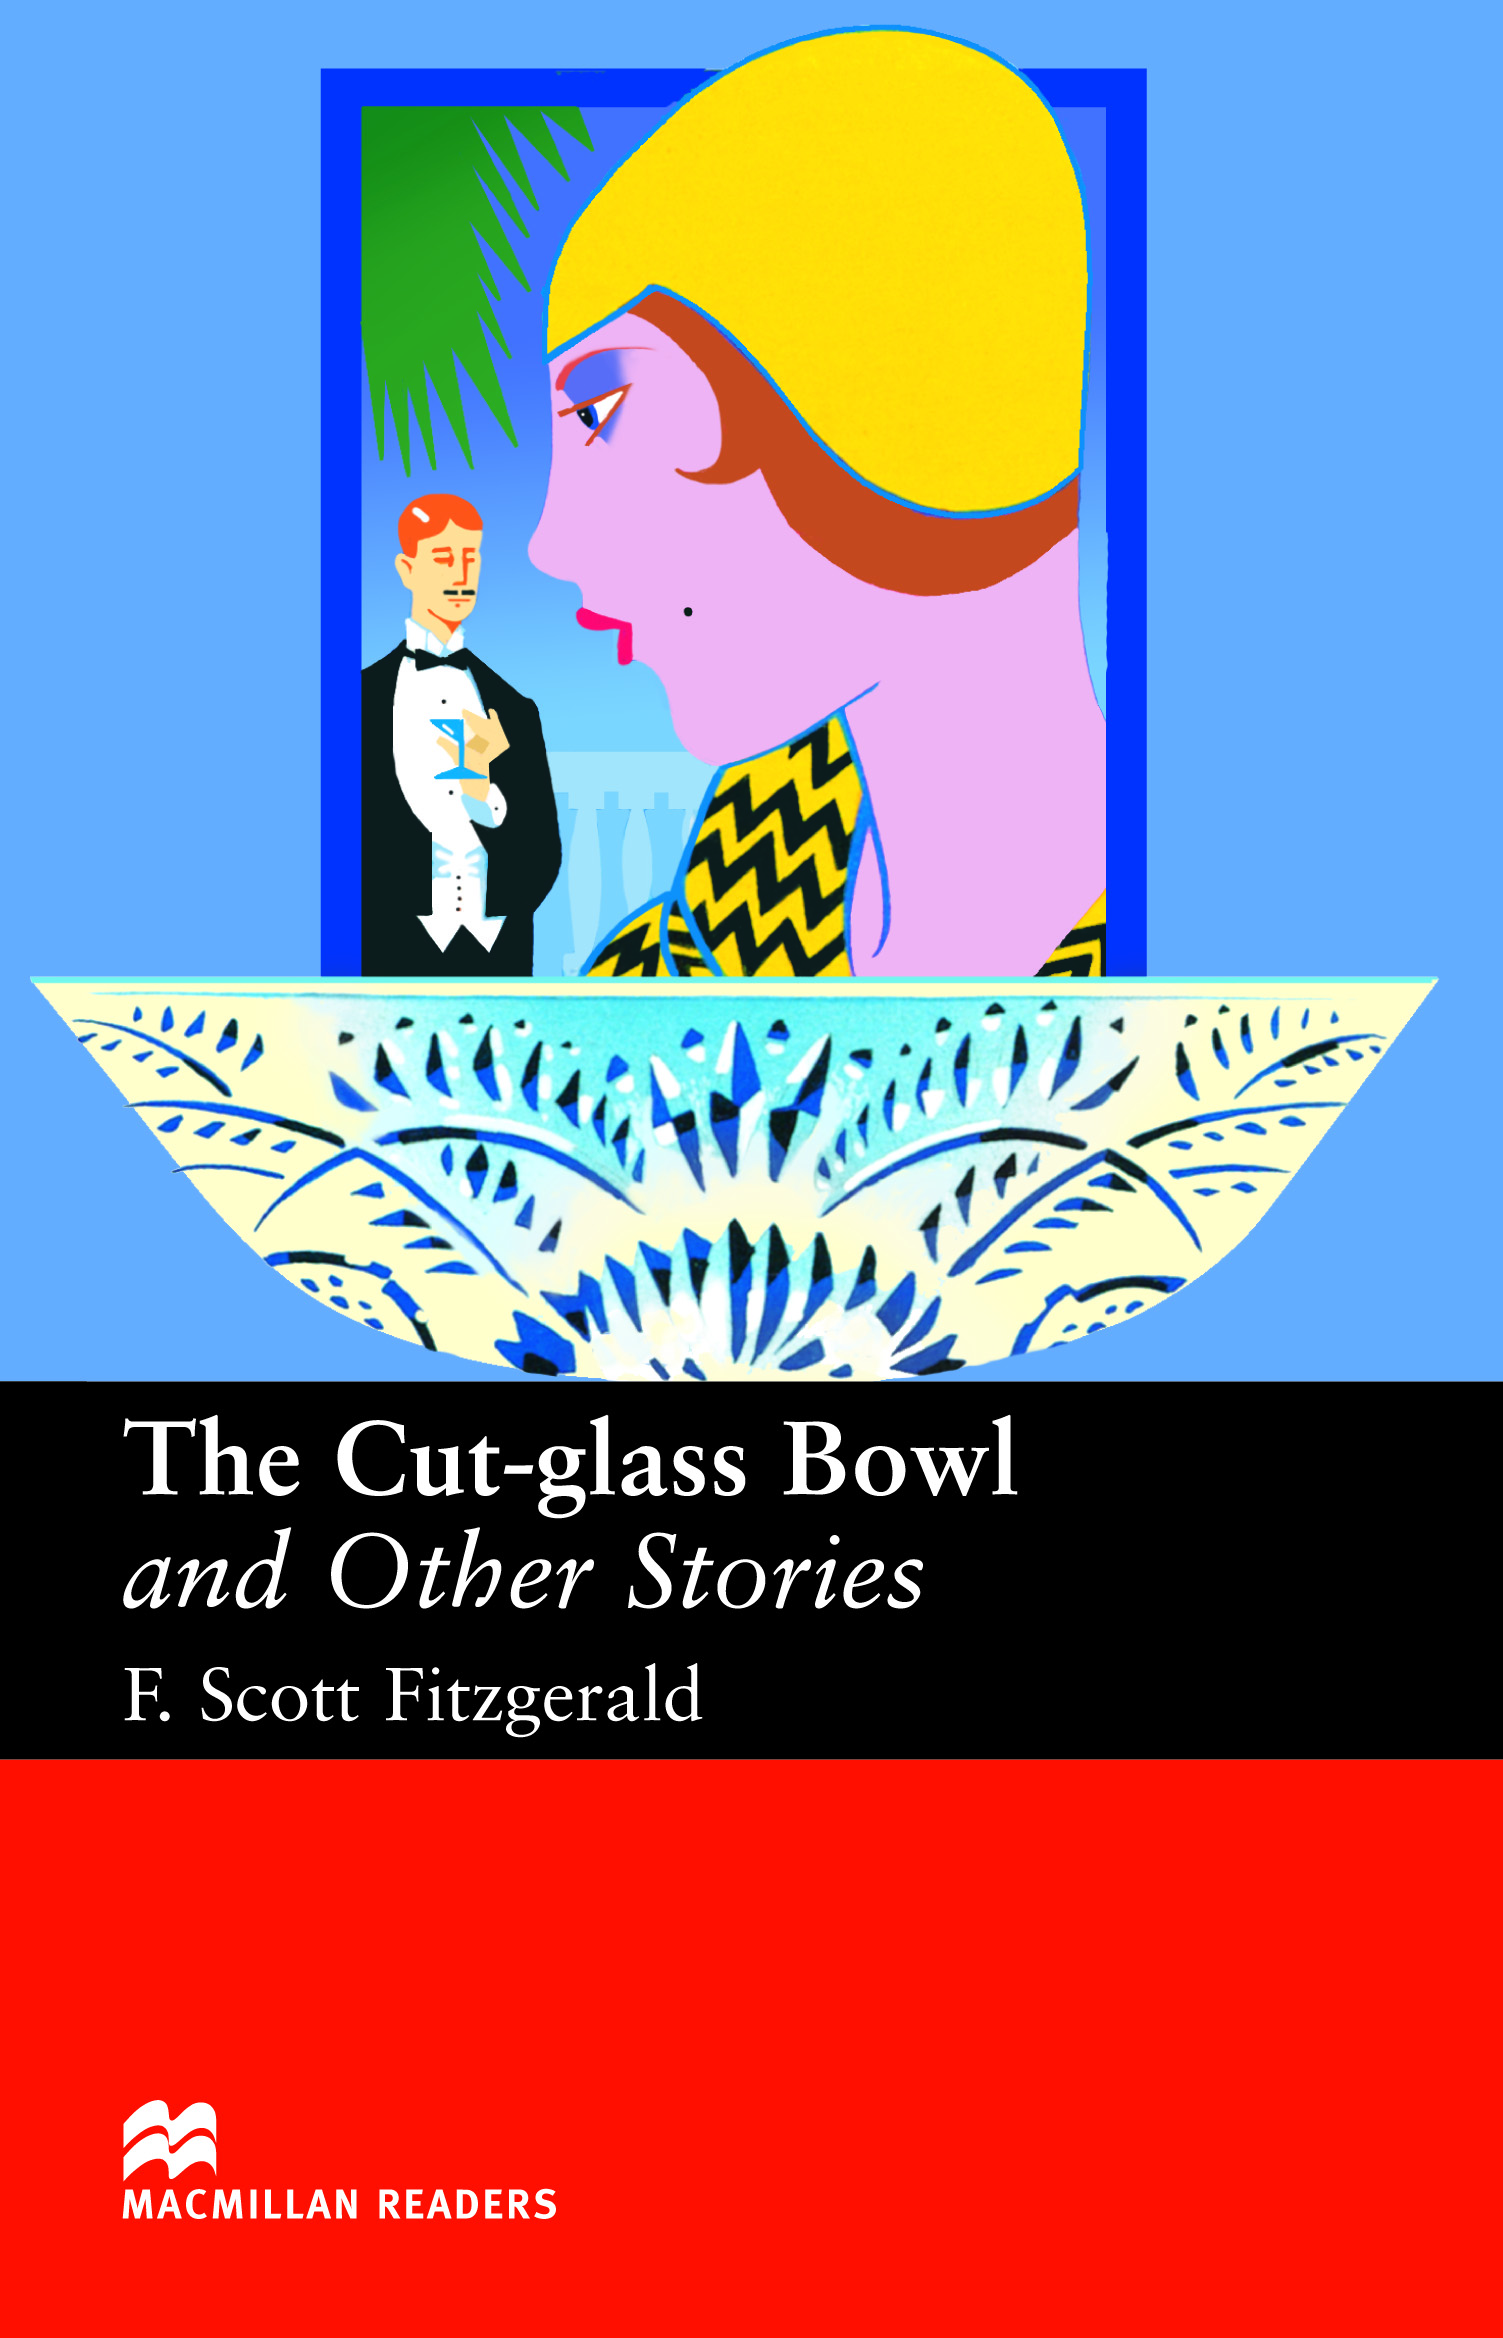 Macmillan Readers: The Cut Glass Bowl and Other Stories